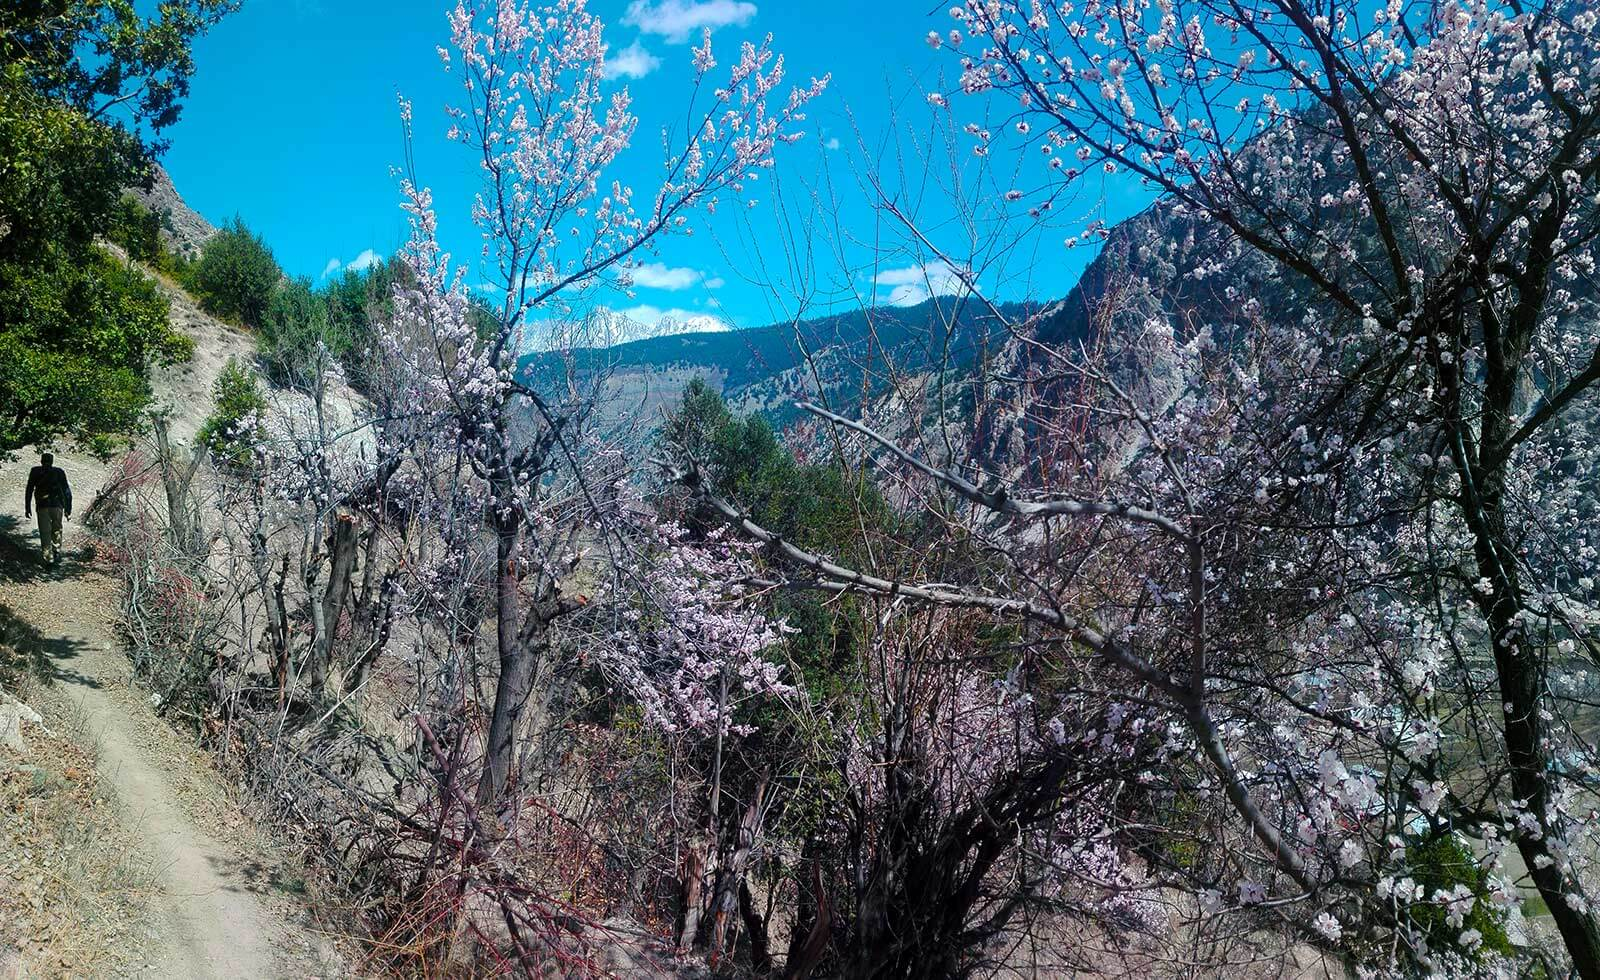 Spring Blossoms at Krakal Village, Kalash Valley. Pakistan